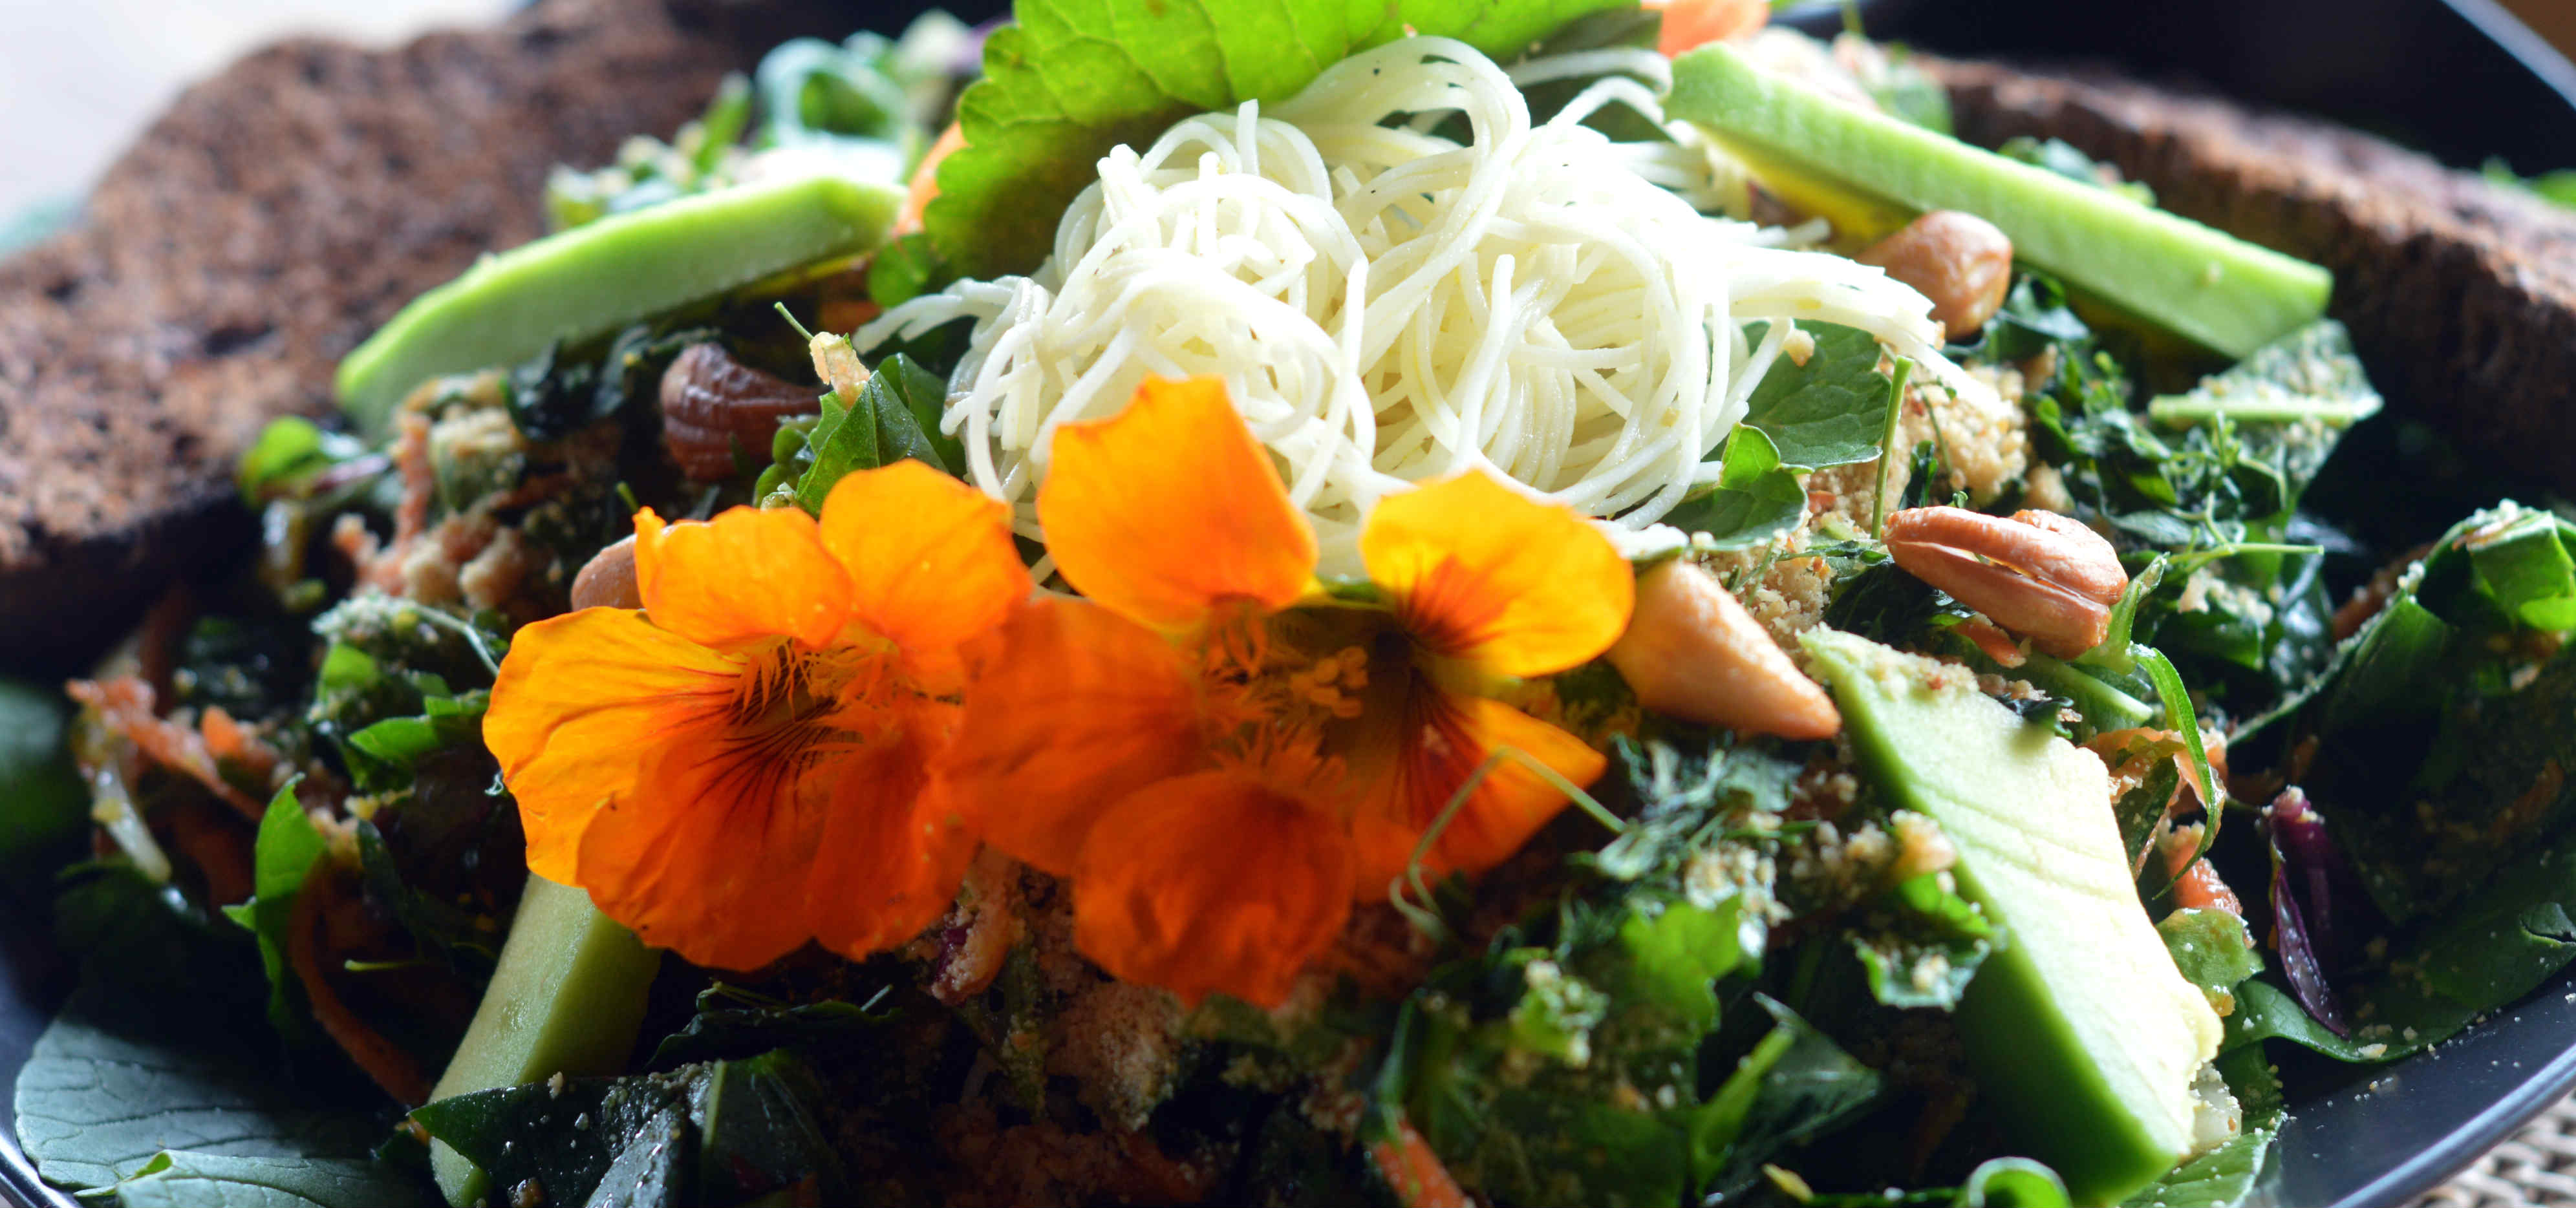 Our Special Eco Lodge Organic Salads